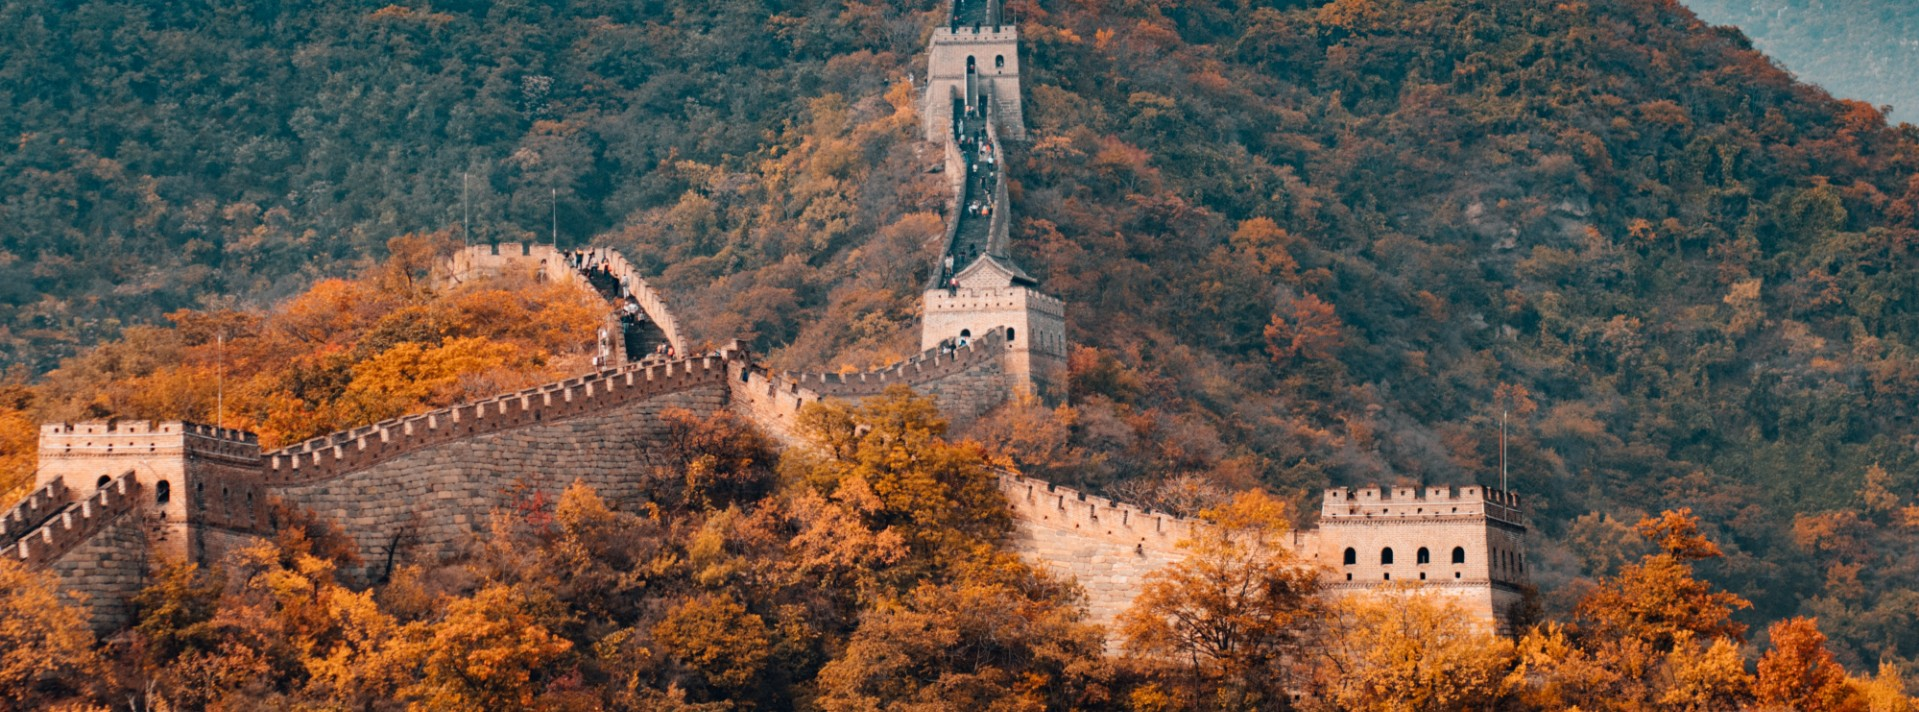 a picture of the Great Wall of China - learn Chinese with Bespeaking Chinese Teachers